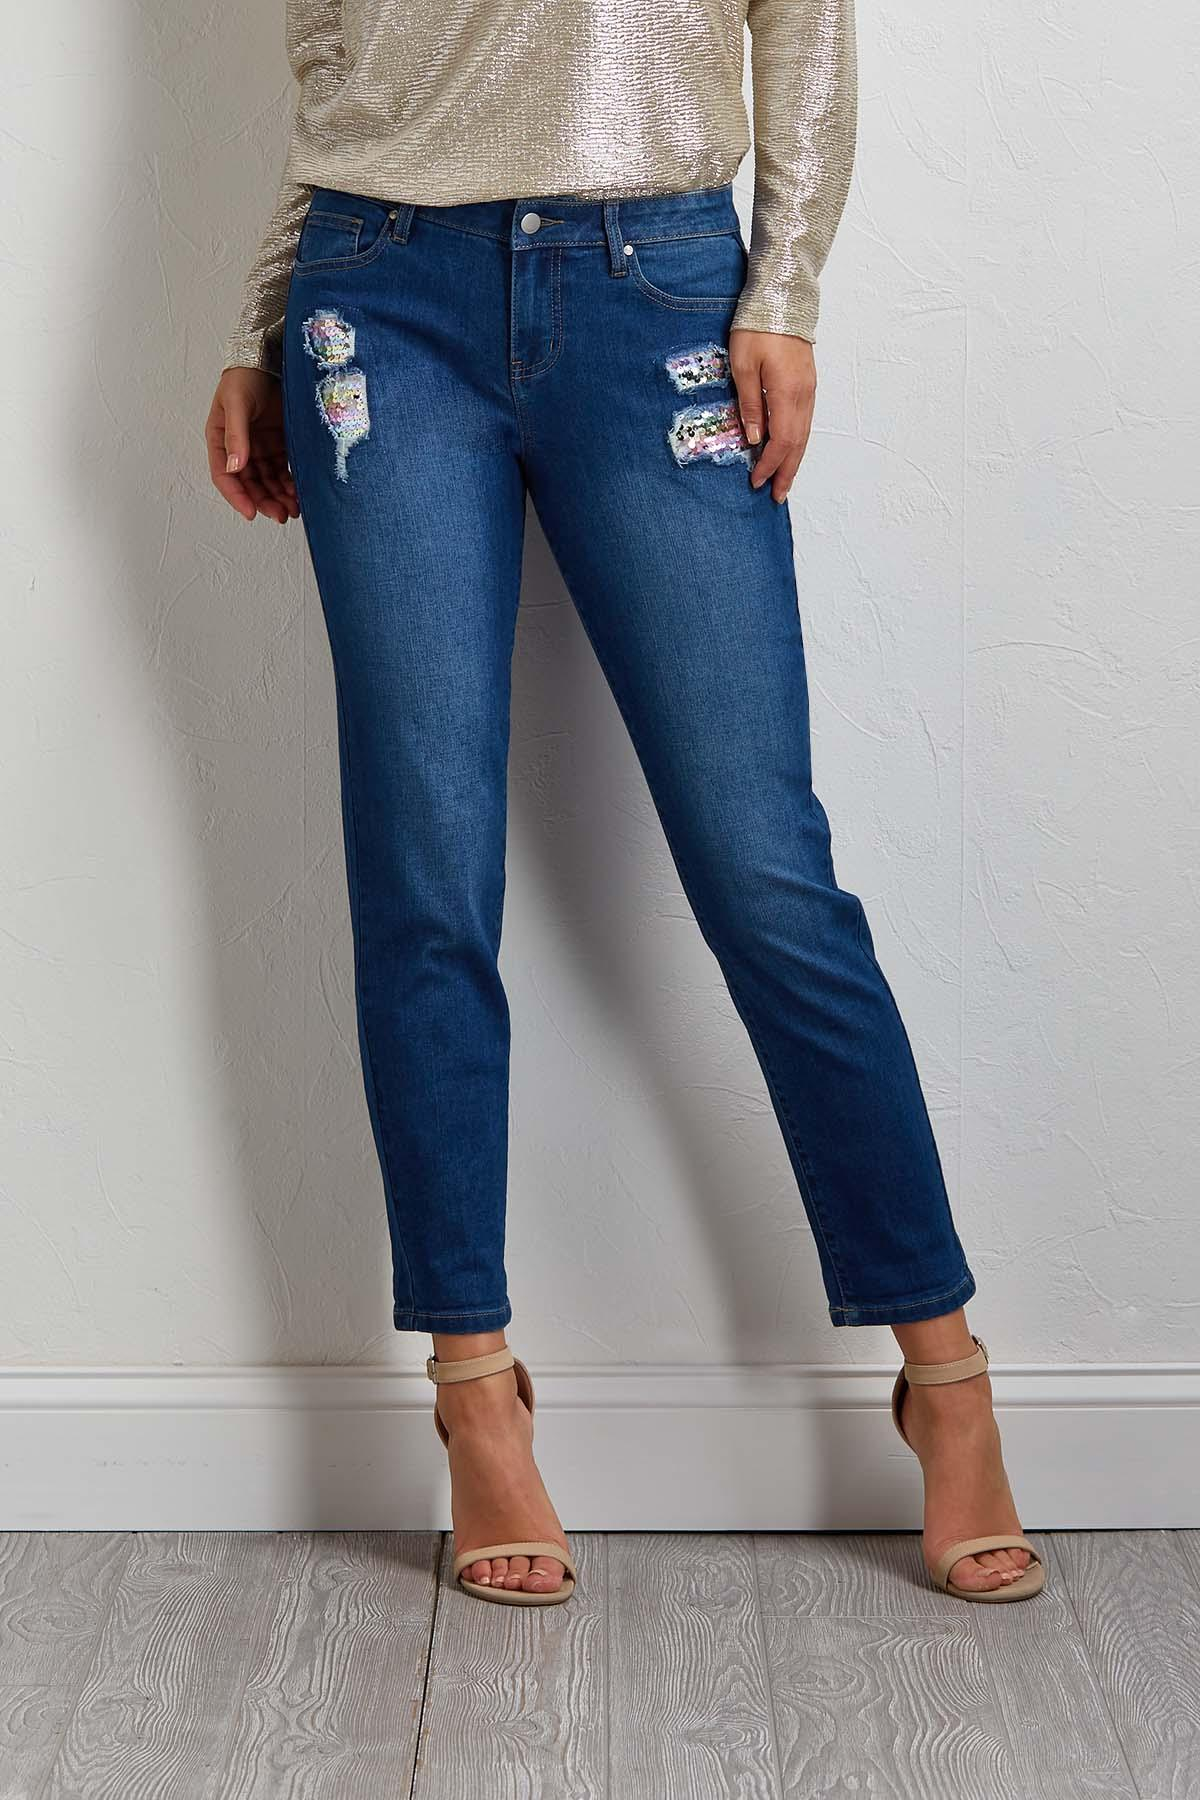 Distressed Sequin Girlfriend Jeans